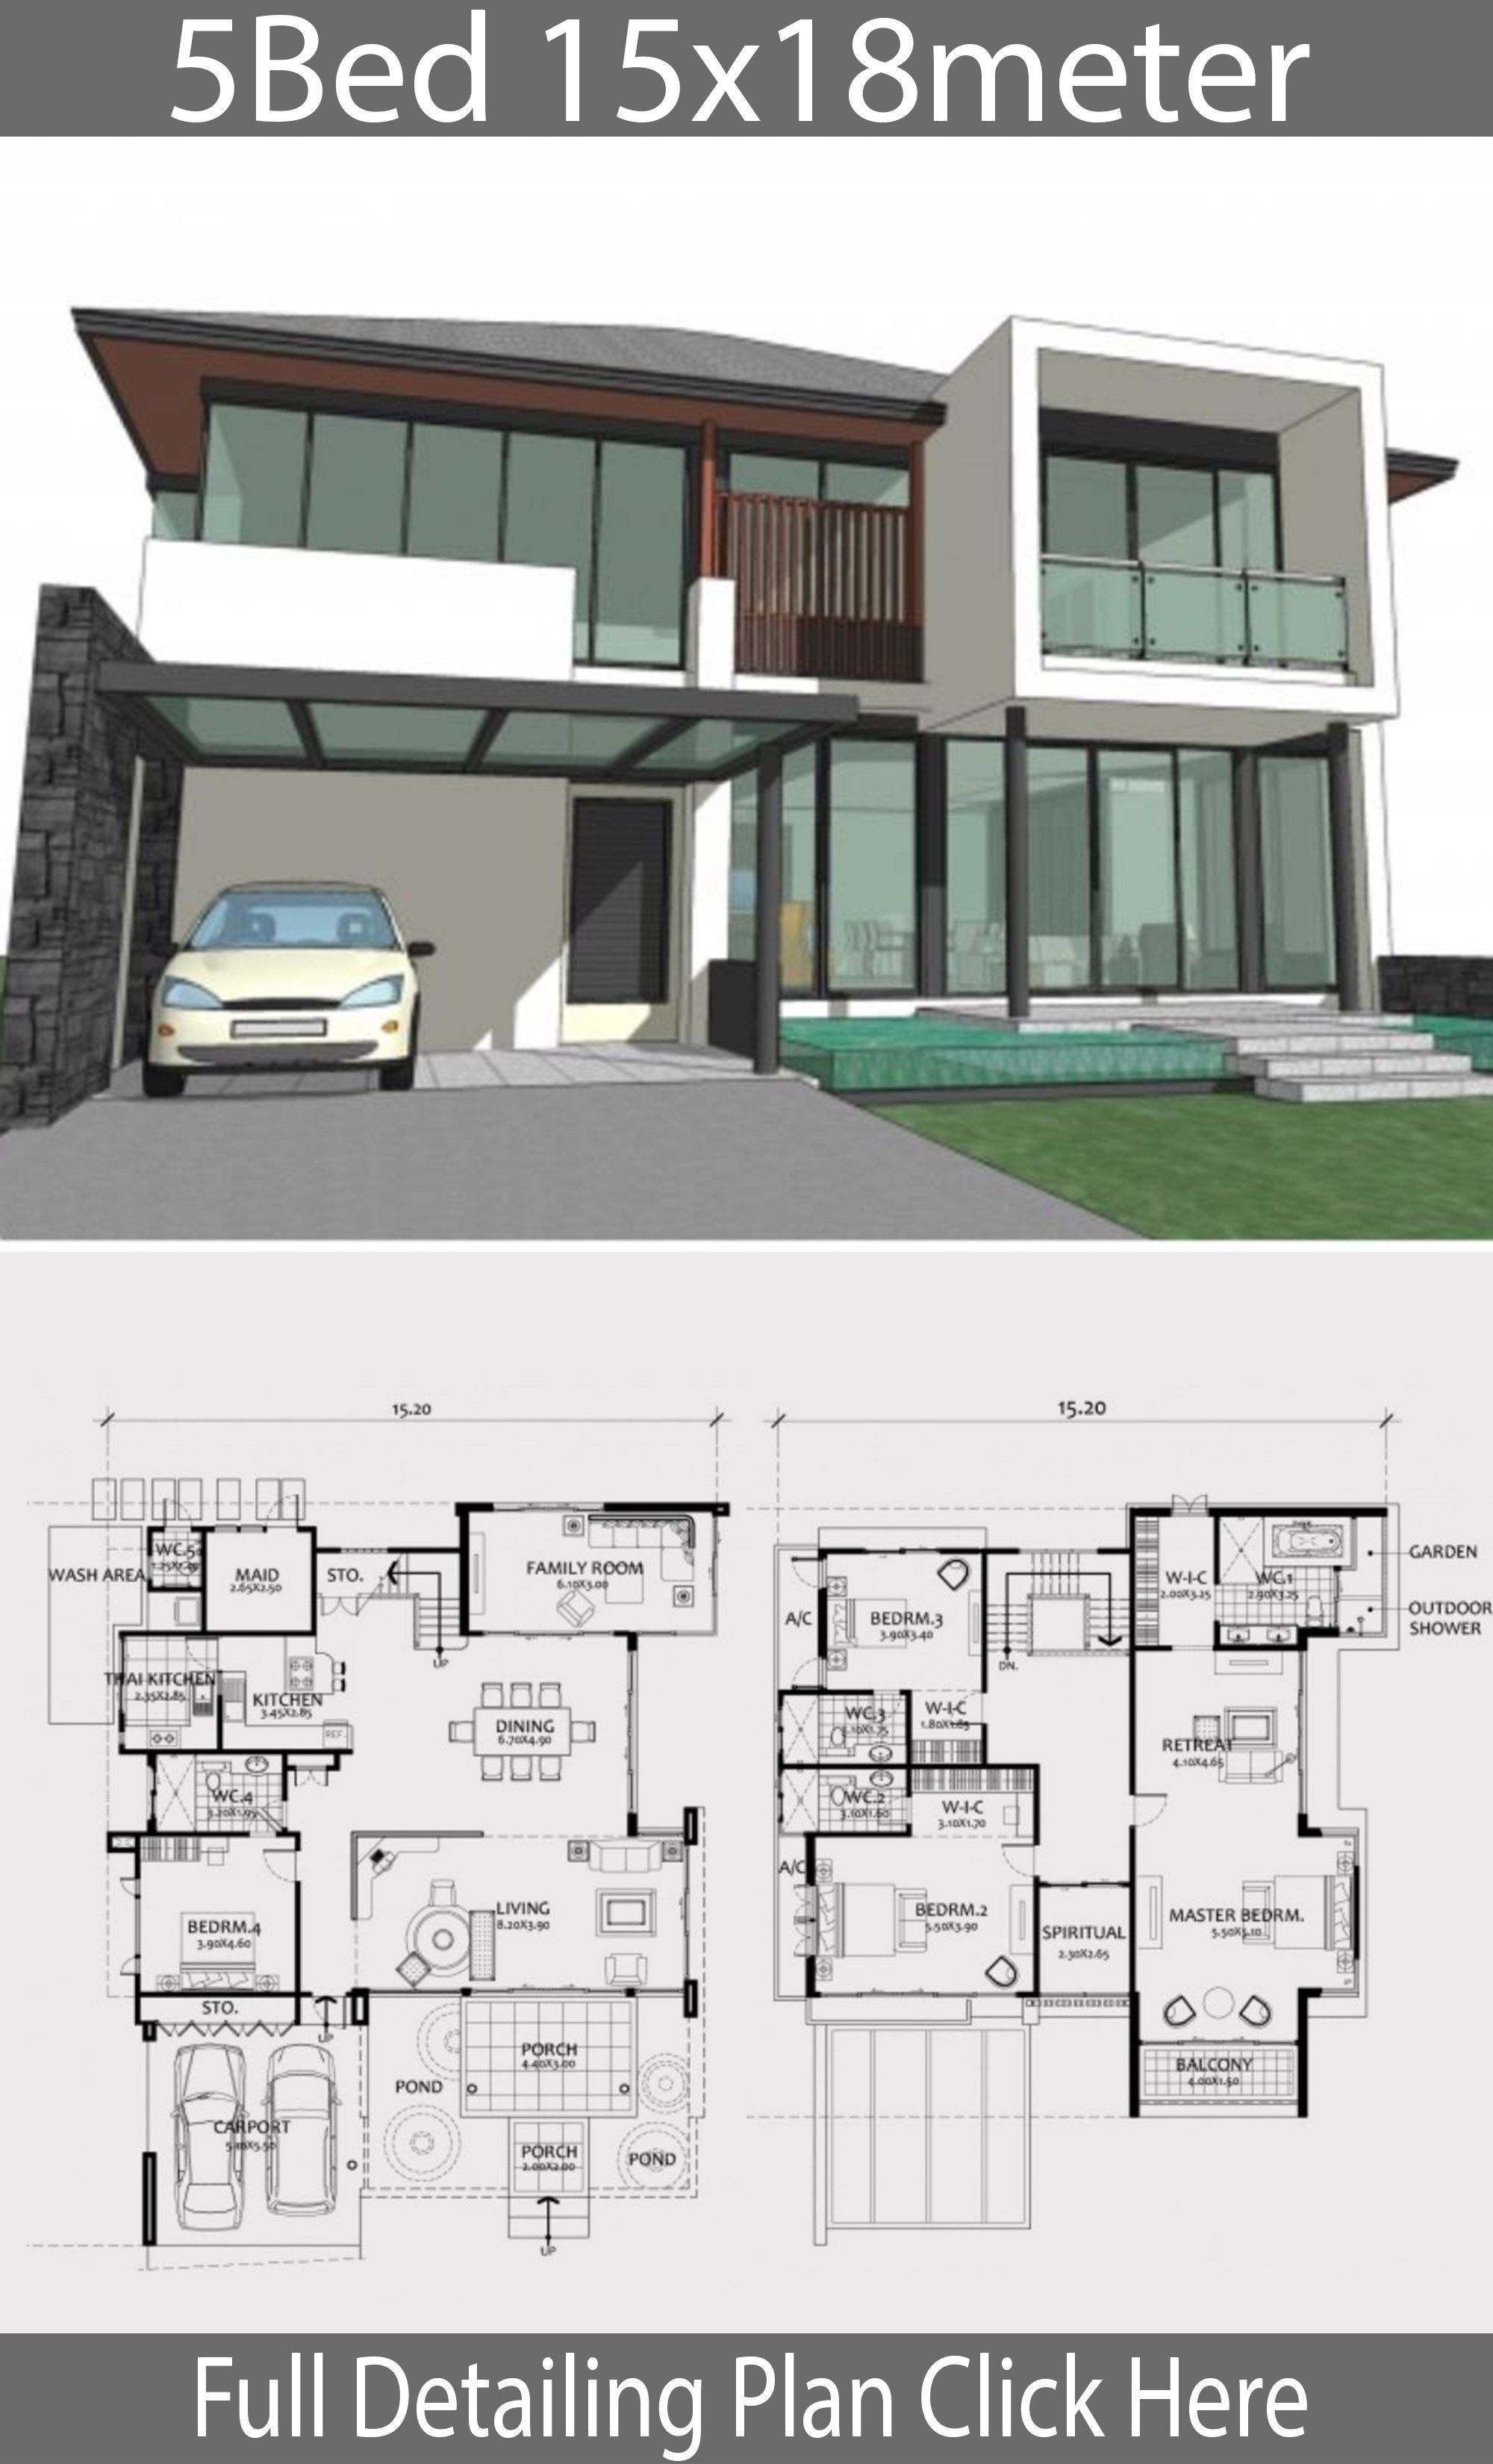 Home Design Plan 15x18m With 5 Bedrooms Home Ideas Modern House Plans Model House Plan House Plans Mansion